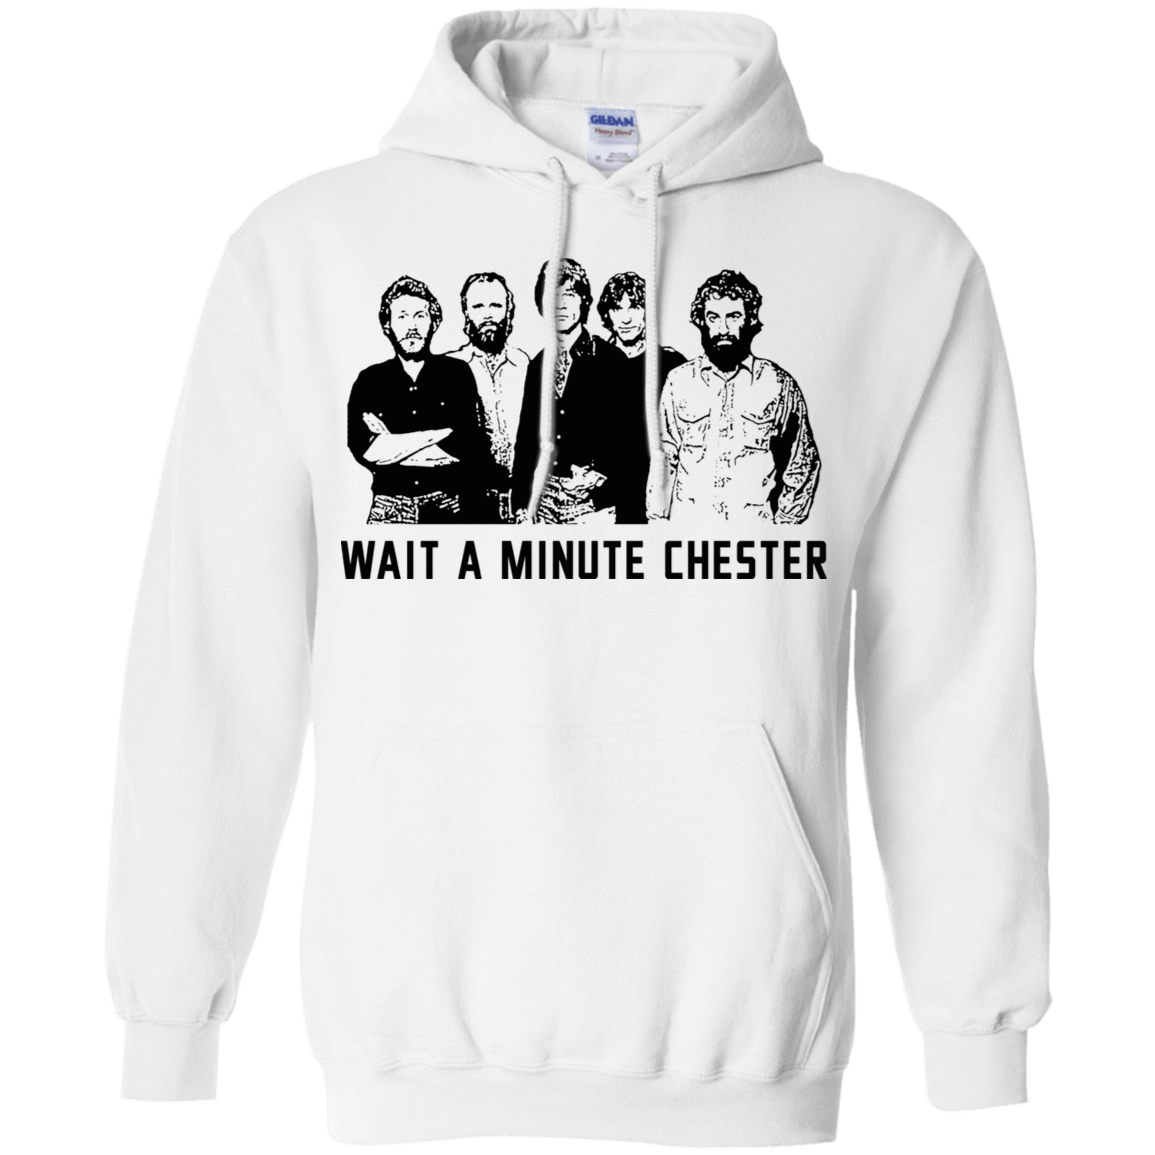 Wait A Minute Chester The Band Version 541-4744-73889089-23183 - Tee Ript